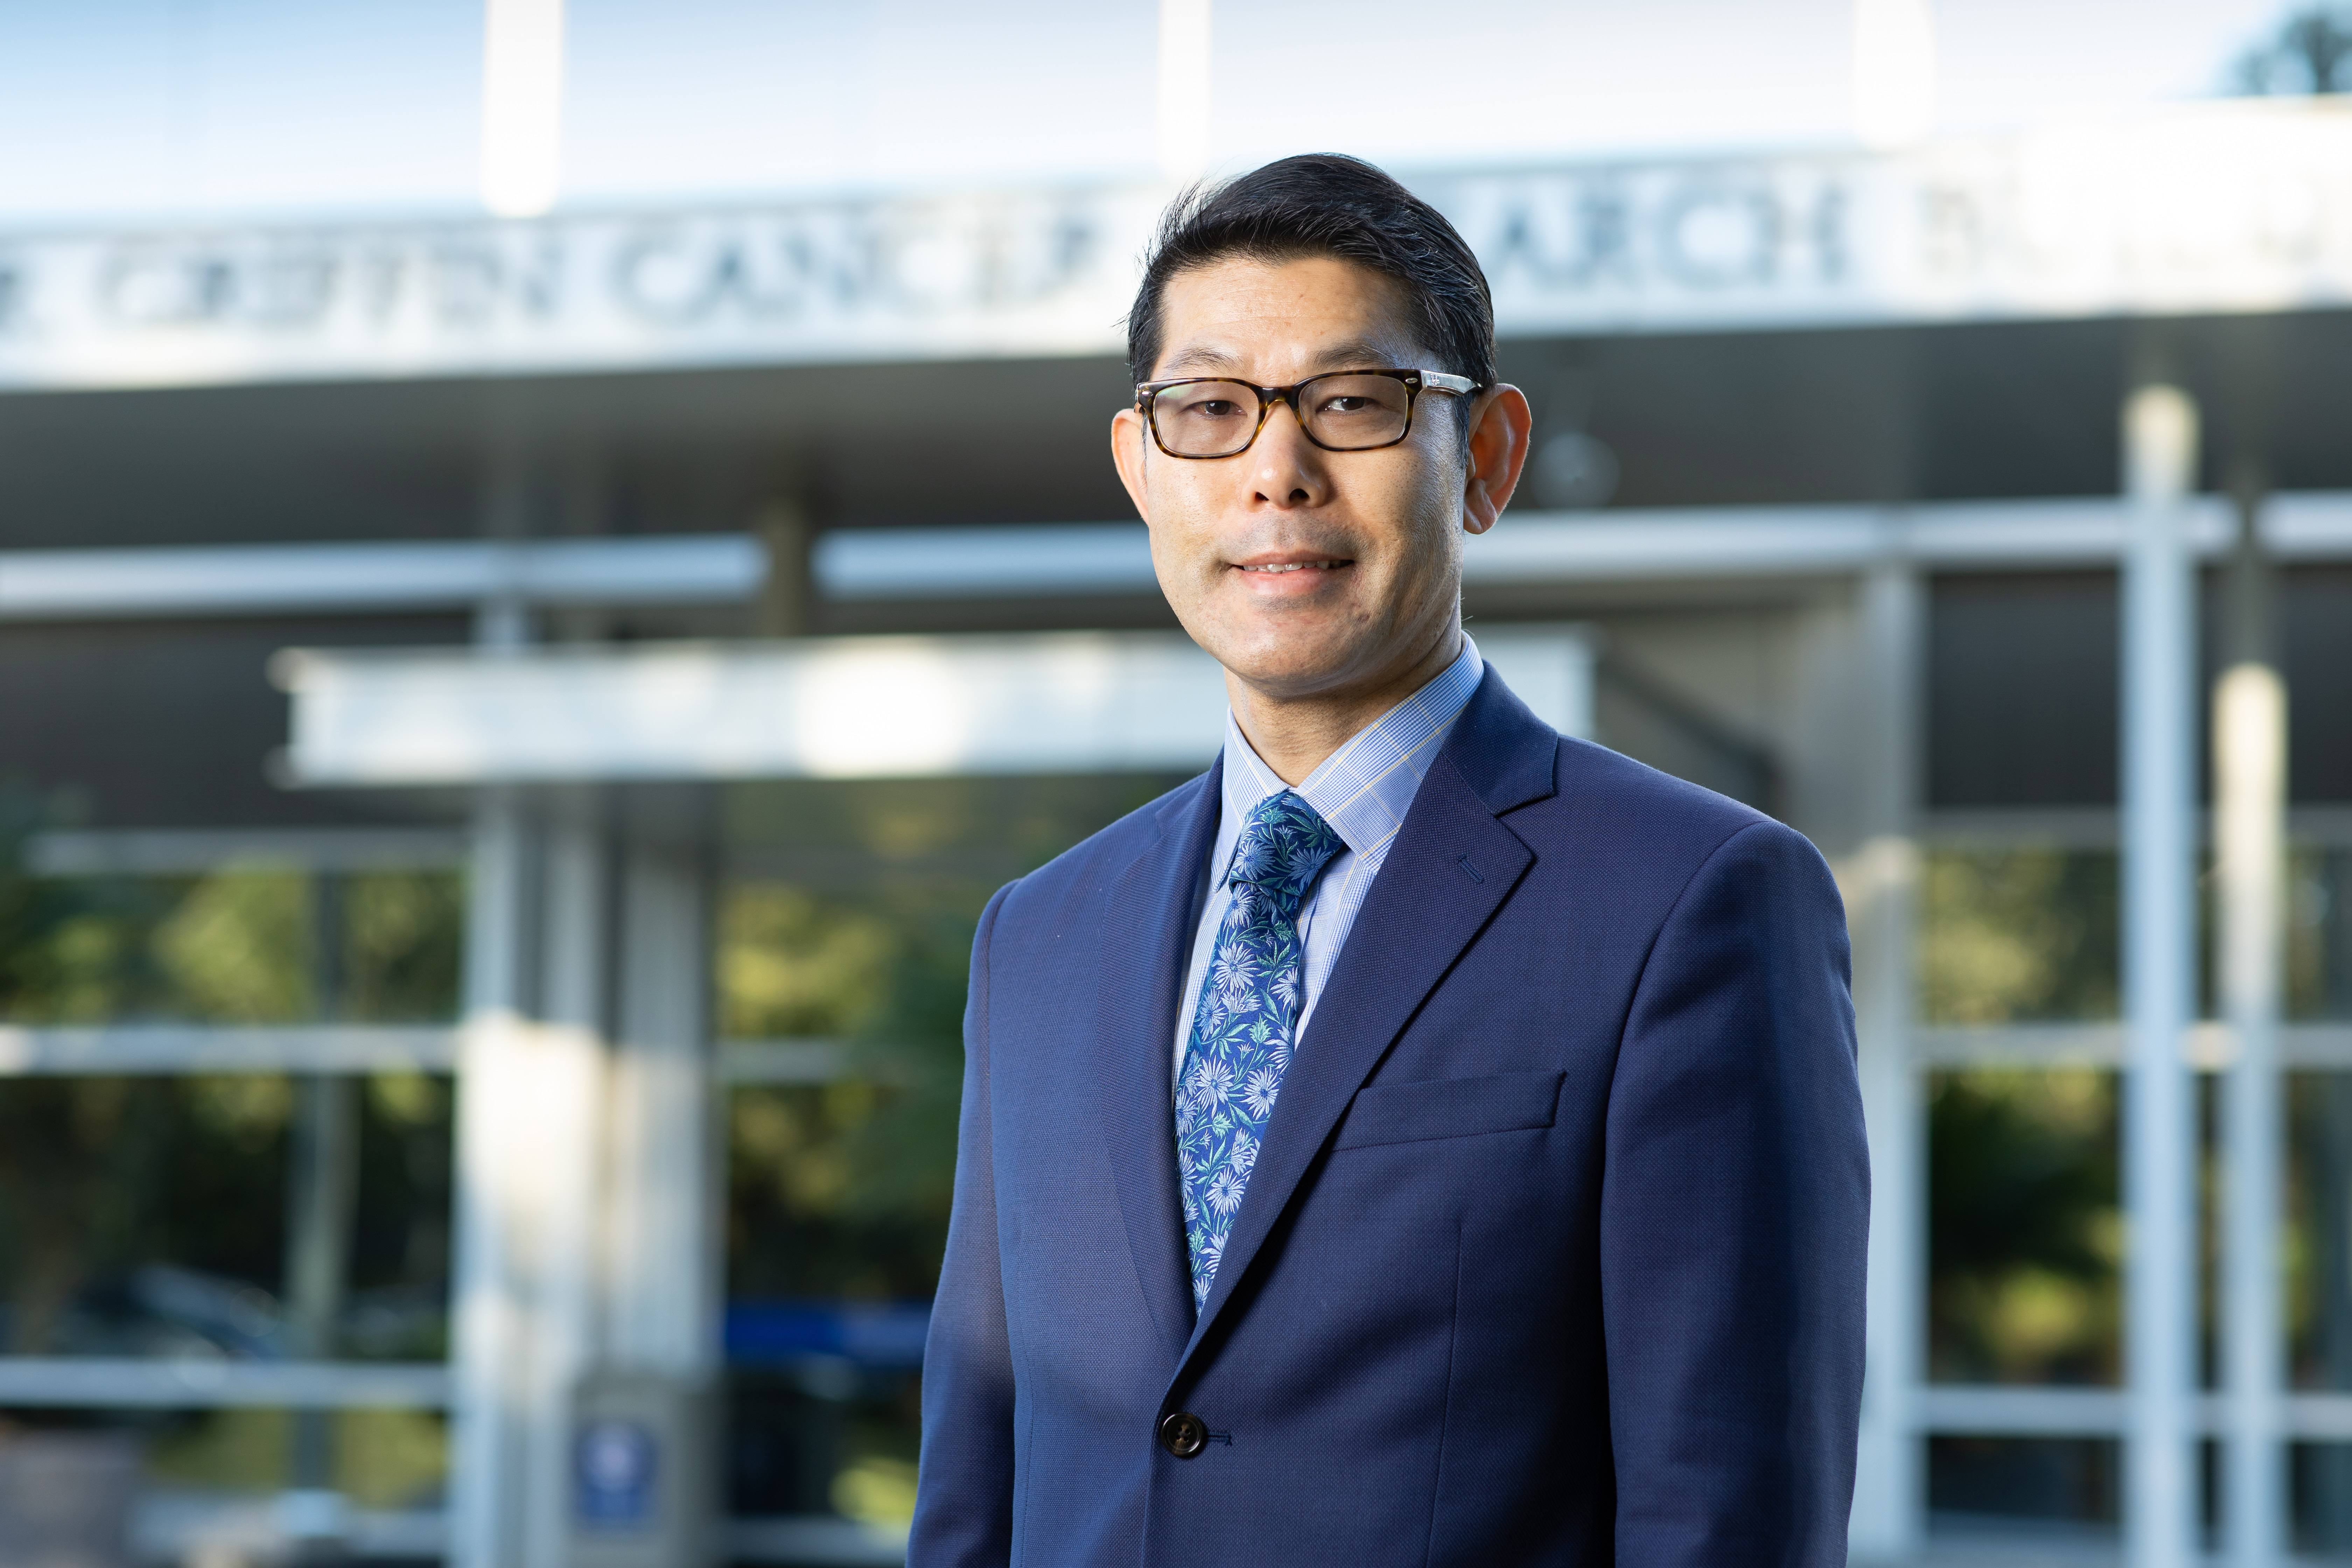 Dr. Ikezu pushes to find answers for Alzheimer's disease